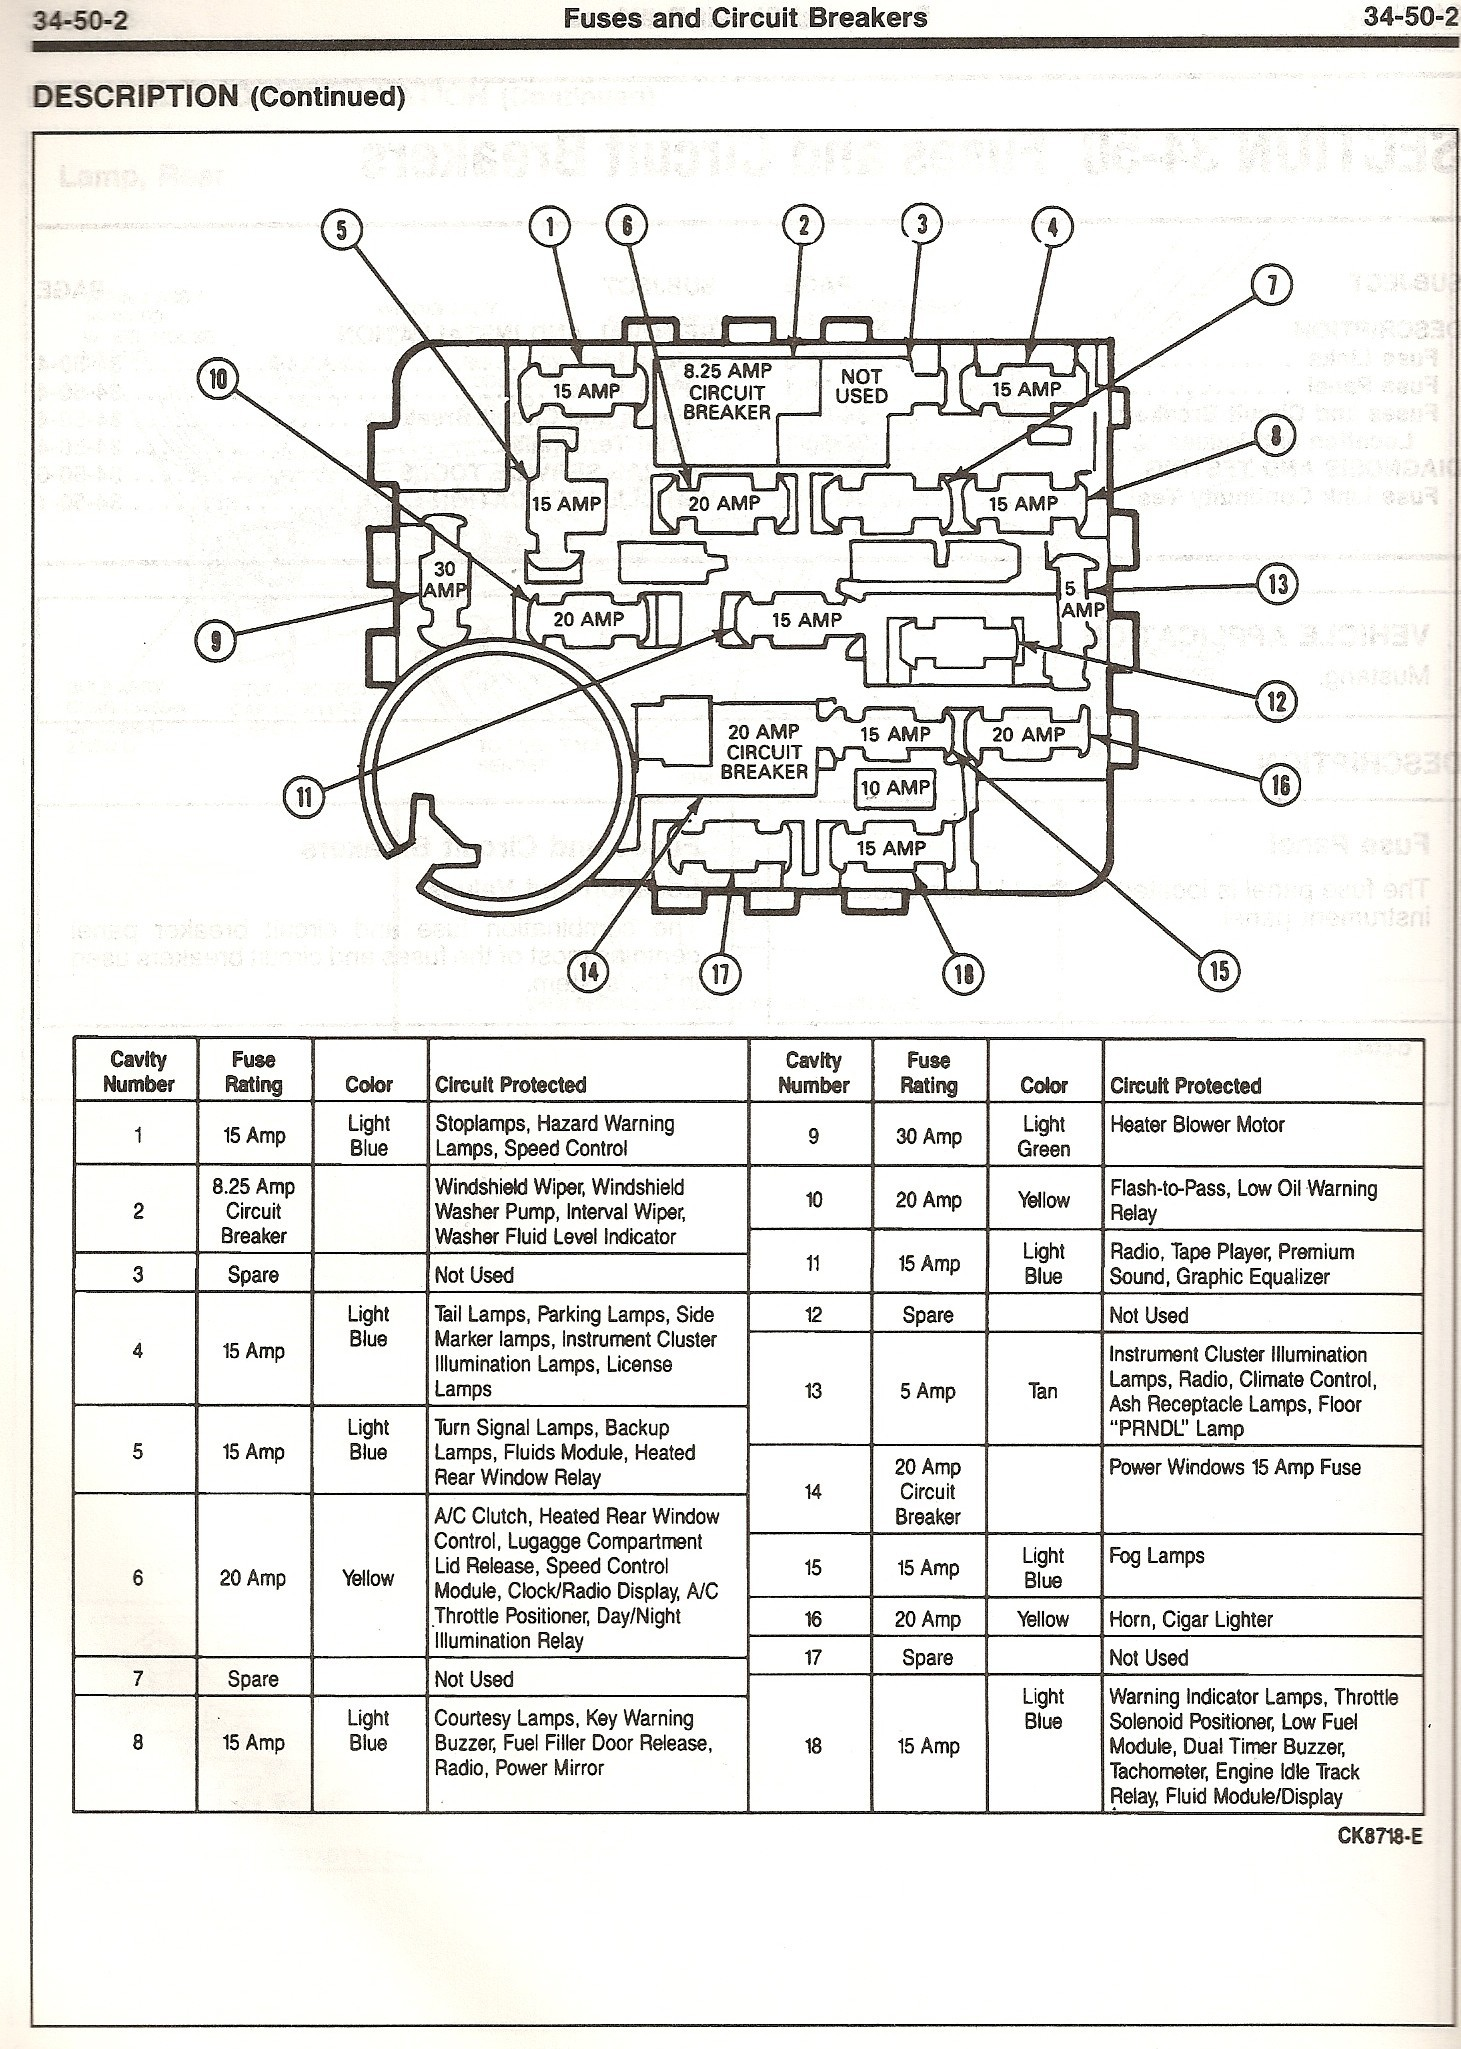 1991 Ford Explorer Fuse Box Diagram Electrical Schematics Toyota Previa 1992 Diy Wiring Diagrams U2022 1995 Windstar